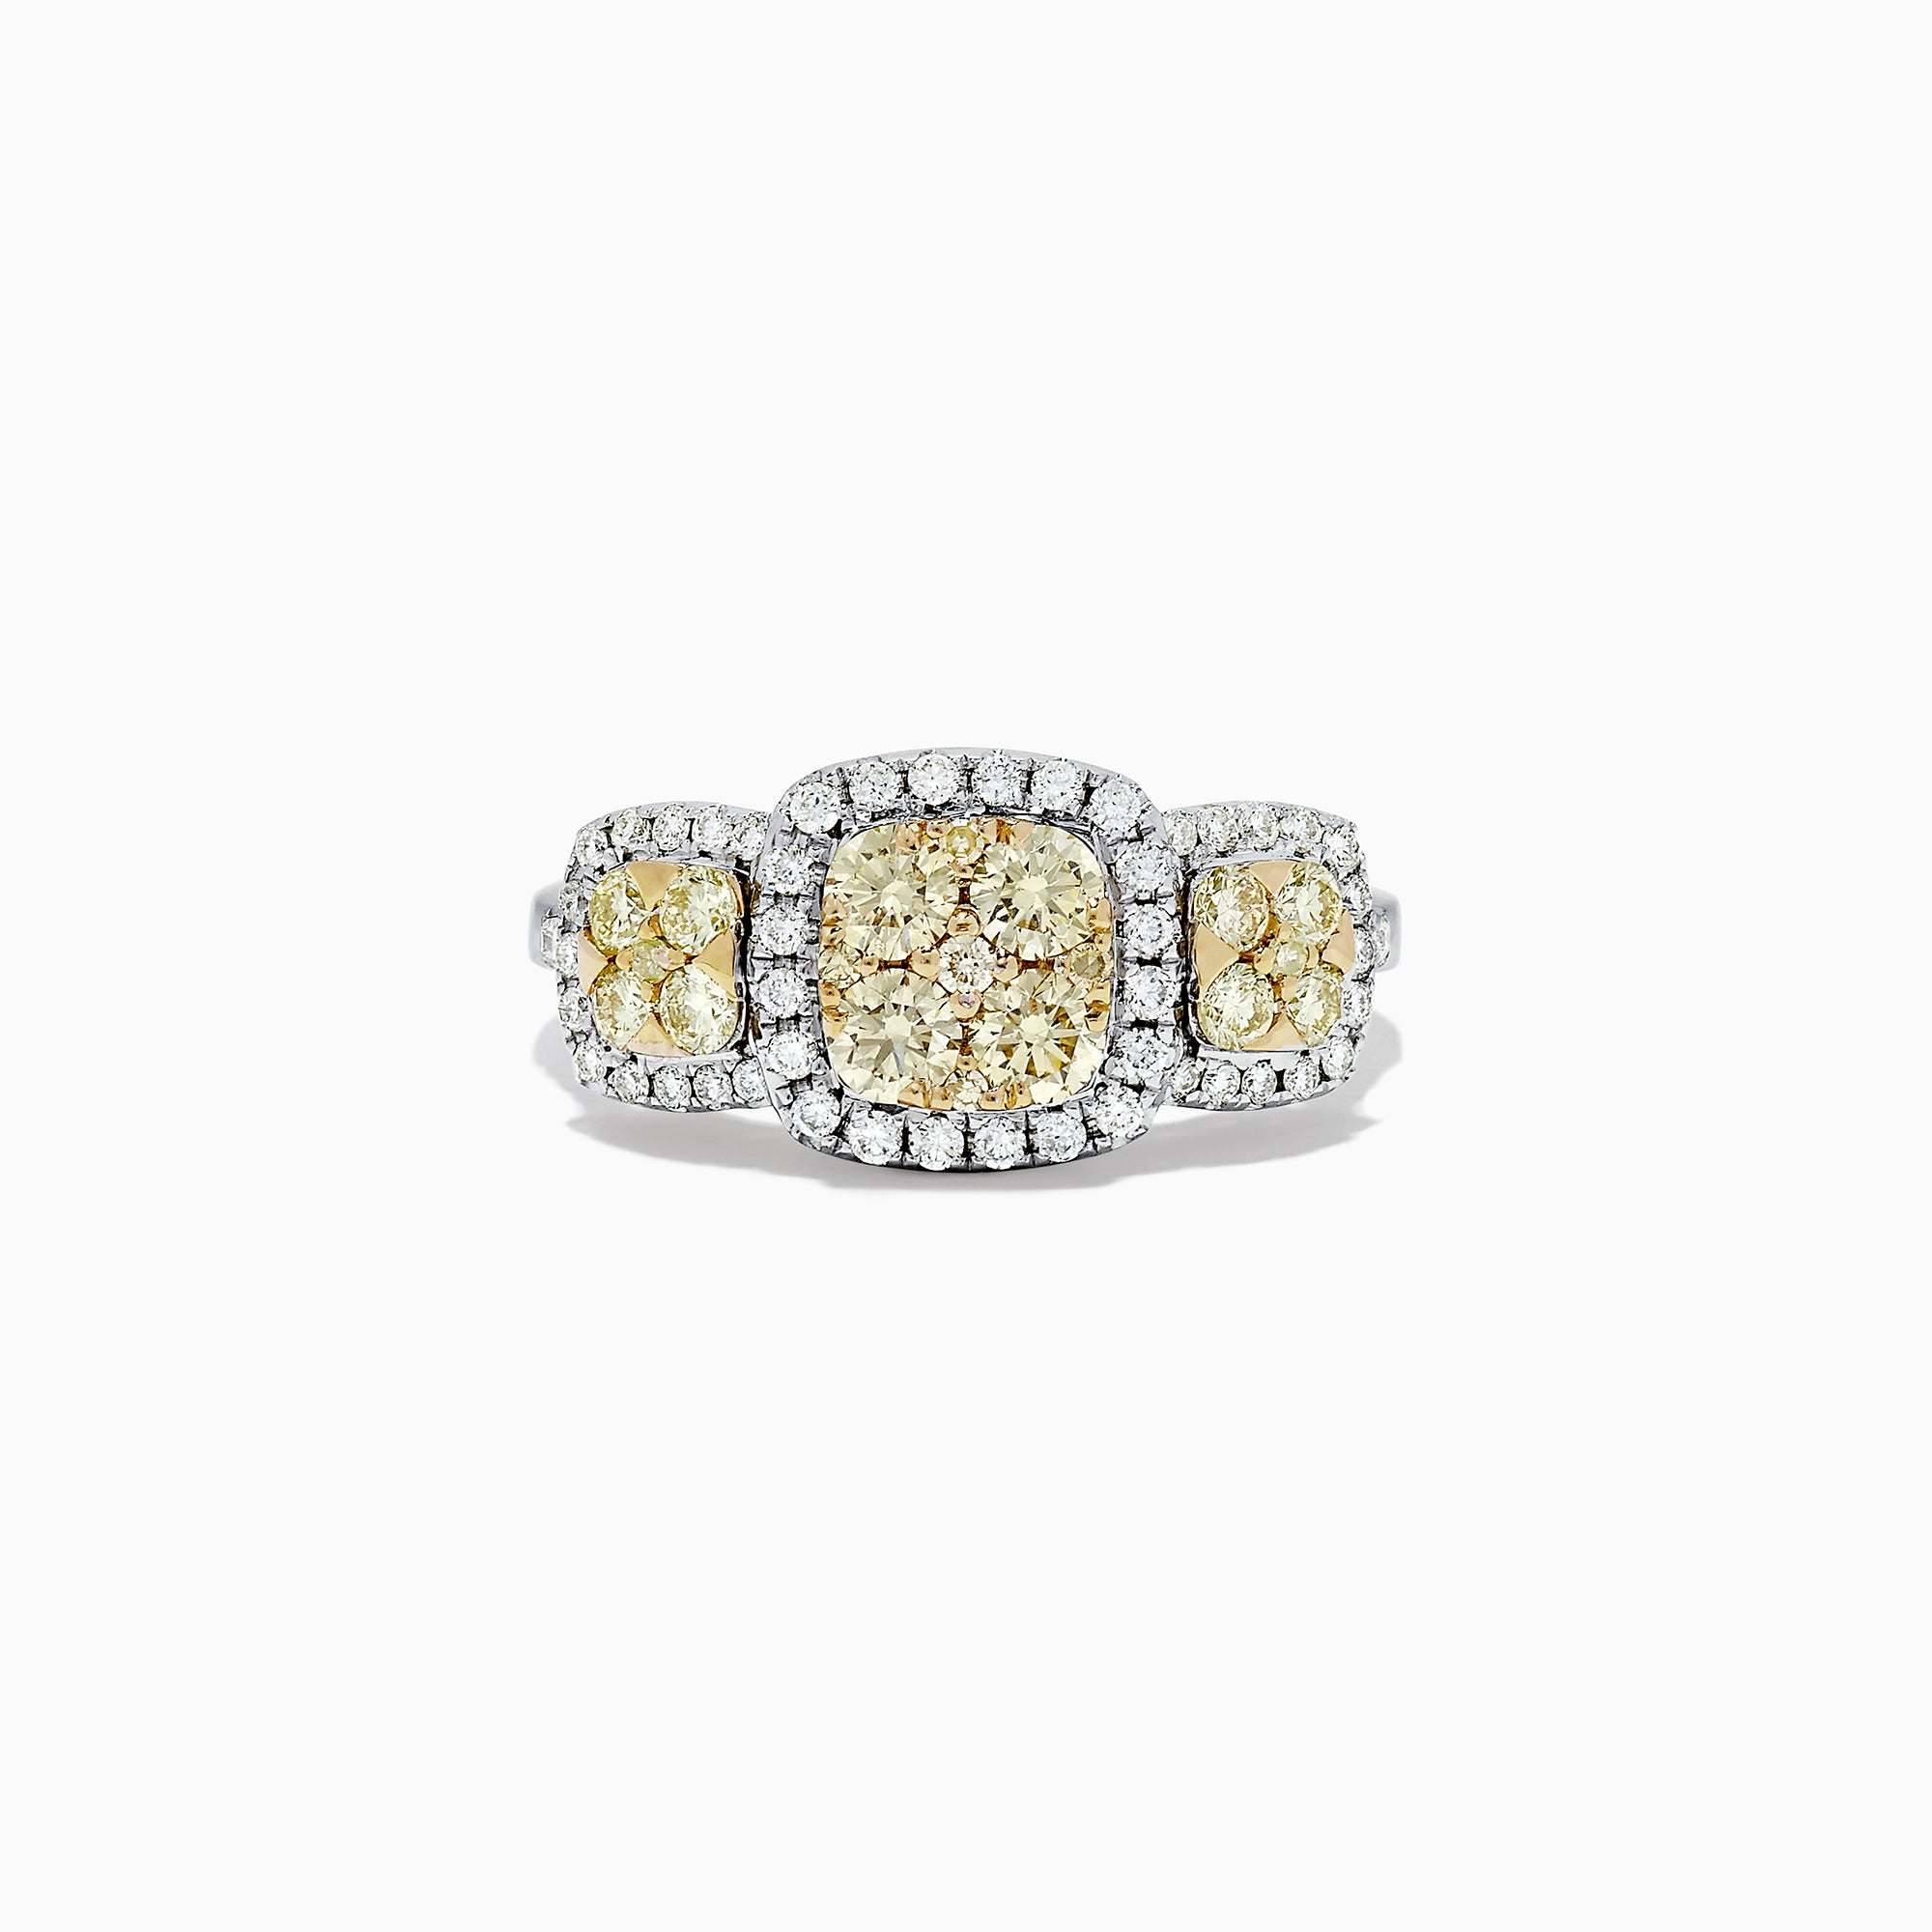 Effy Canare 14K Two Tone Gold Yellow and White Diamond Ring, 1.10 TCW